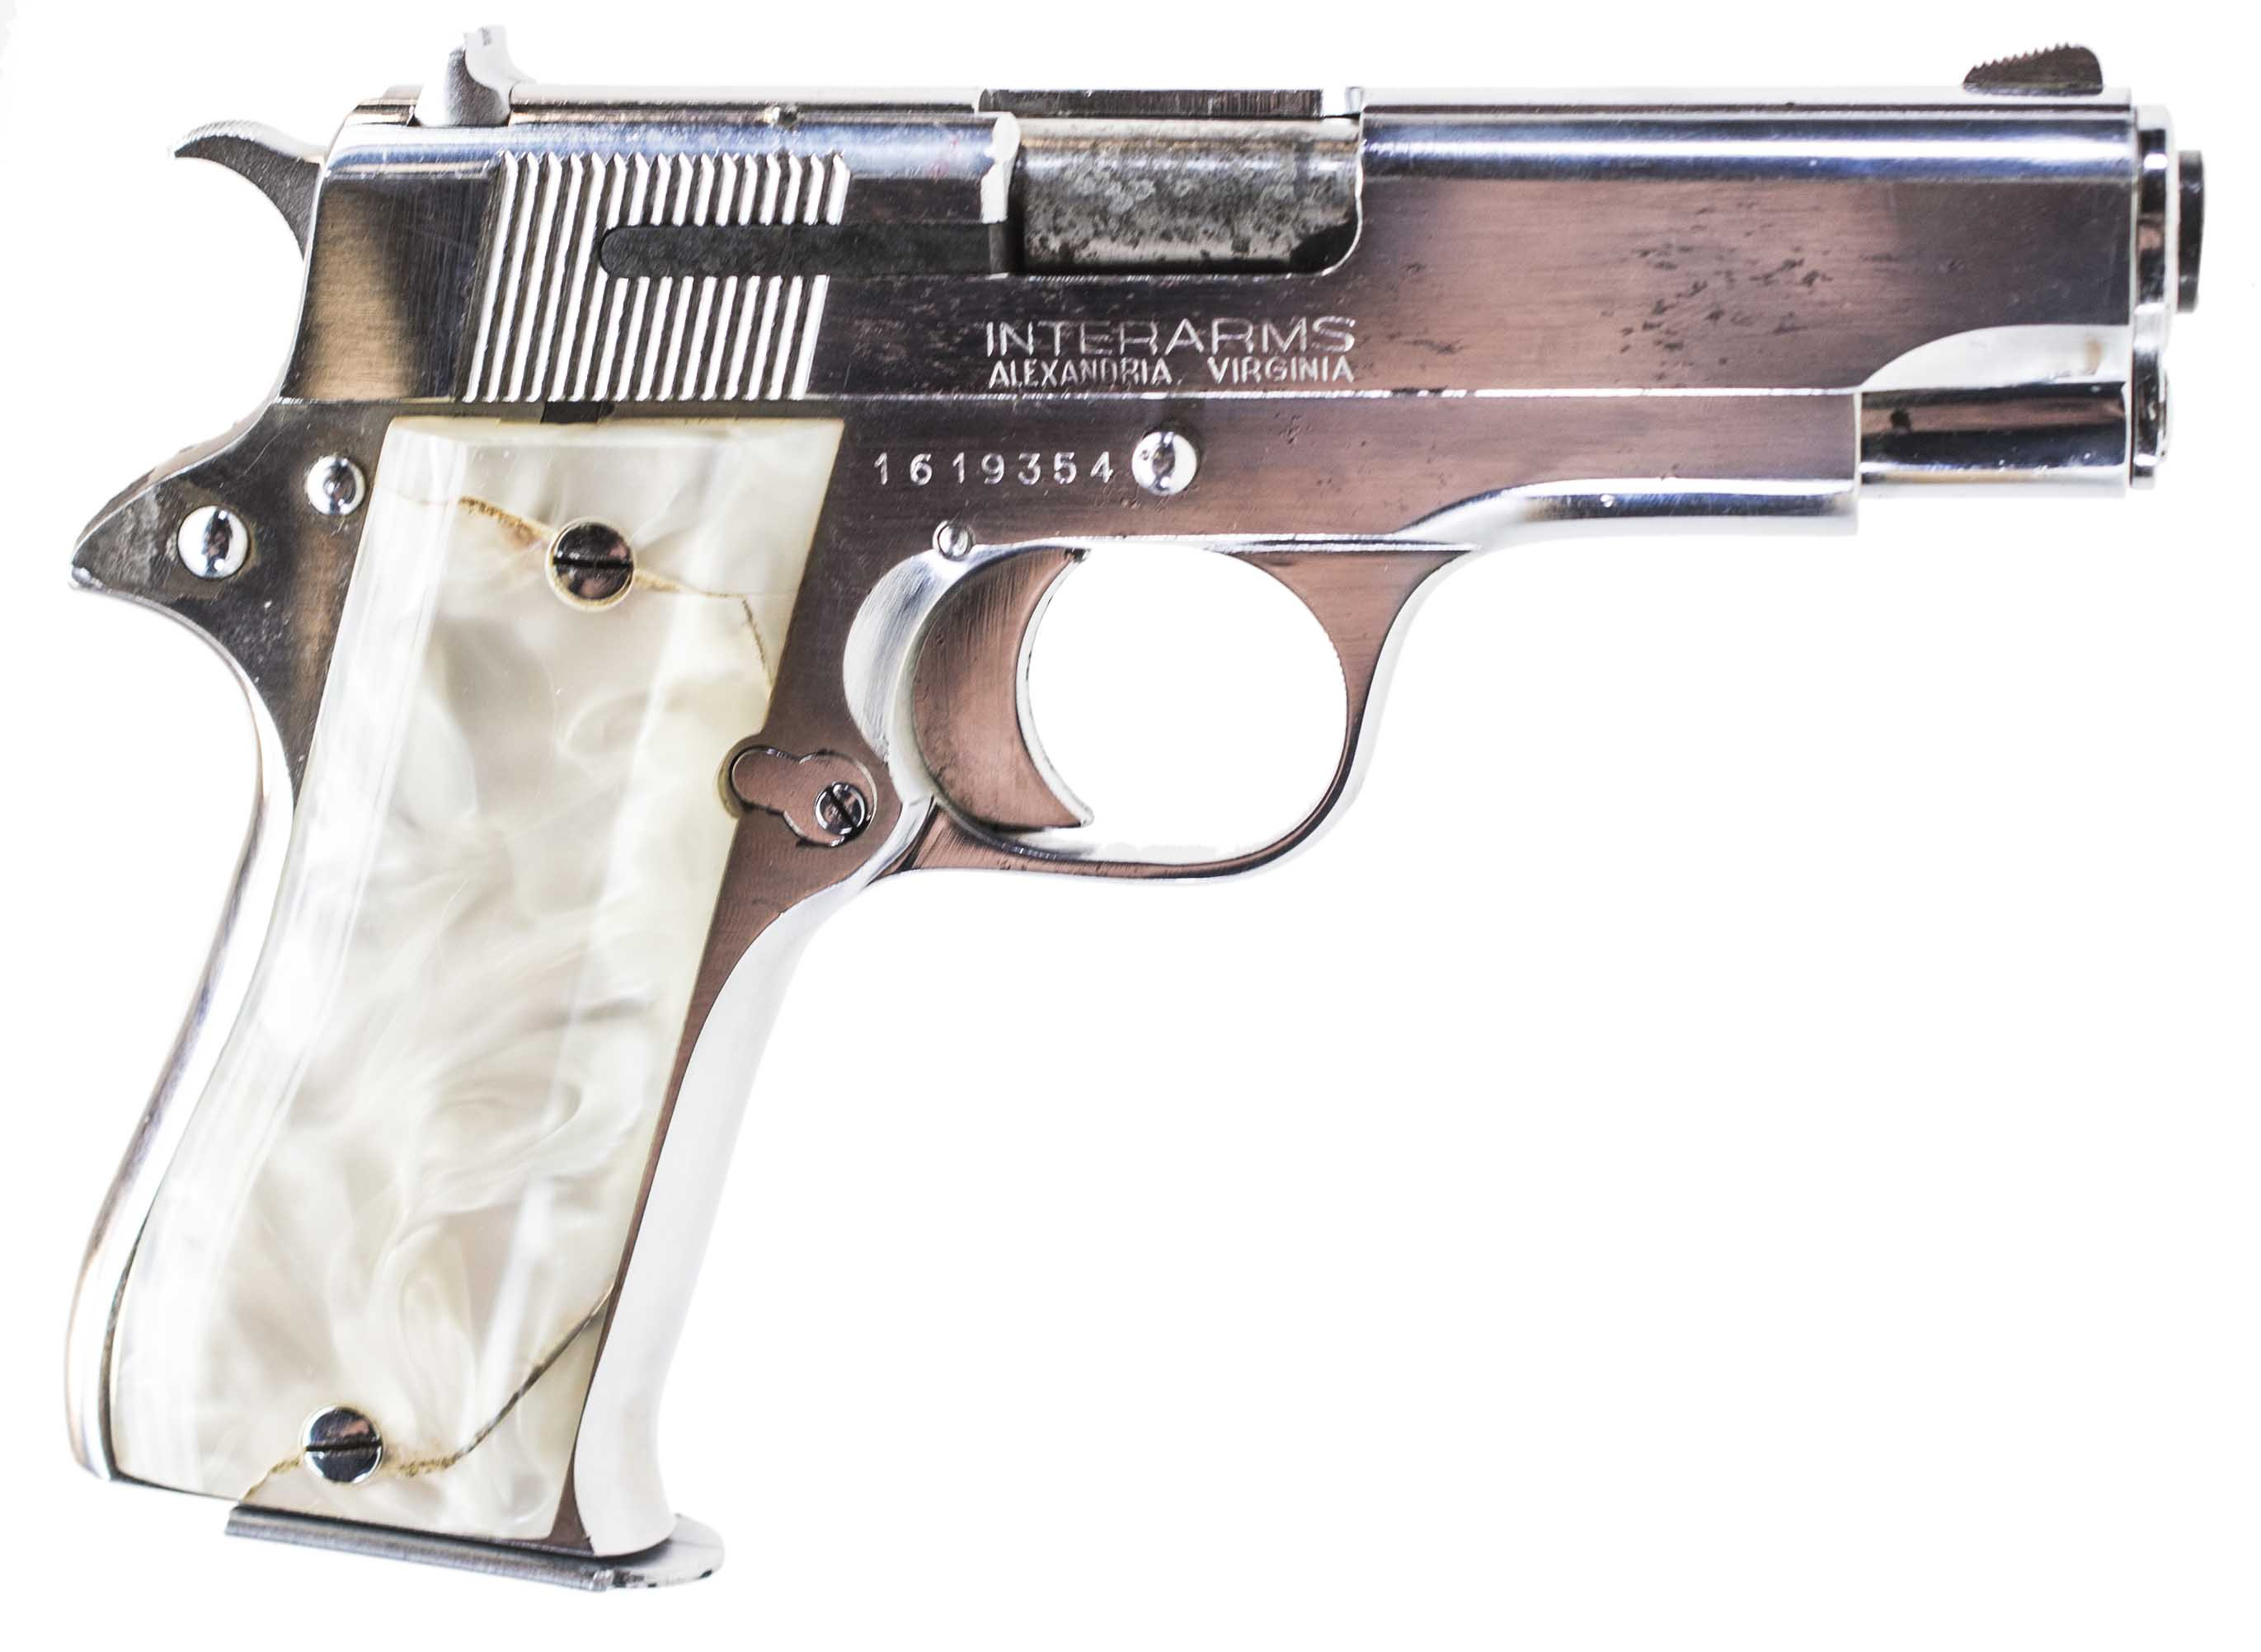 Kentucky Auto Auction >> STAR MODEL BM 9MM (Auction ID: 5381641, End Time : Sep. 24, 2016 22:10:00) - eGunner